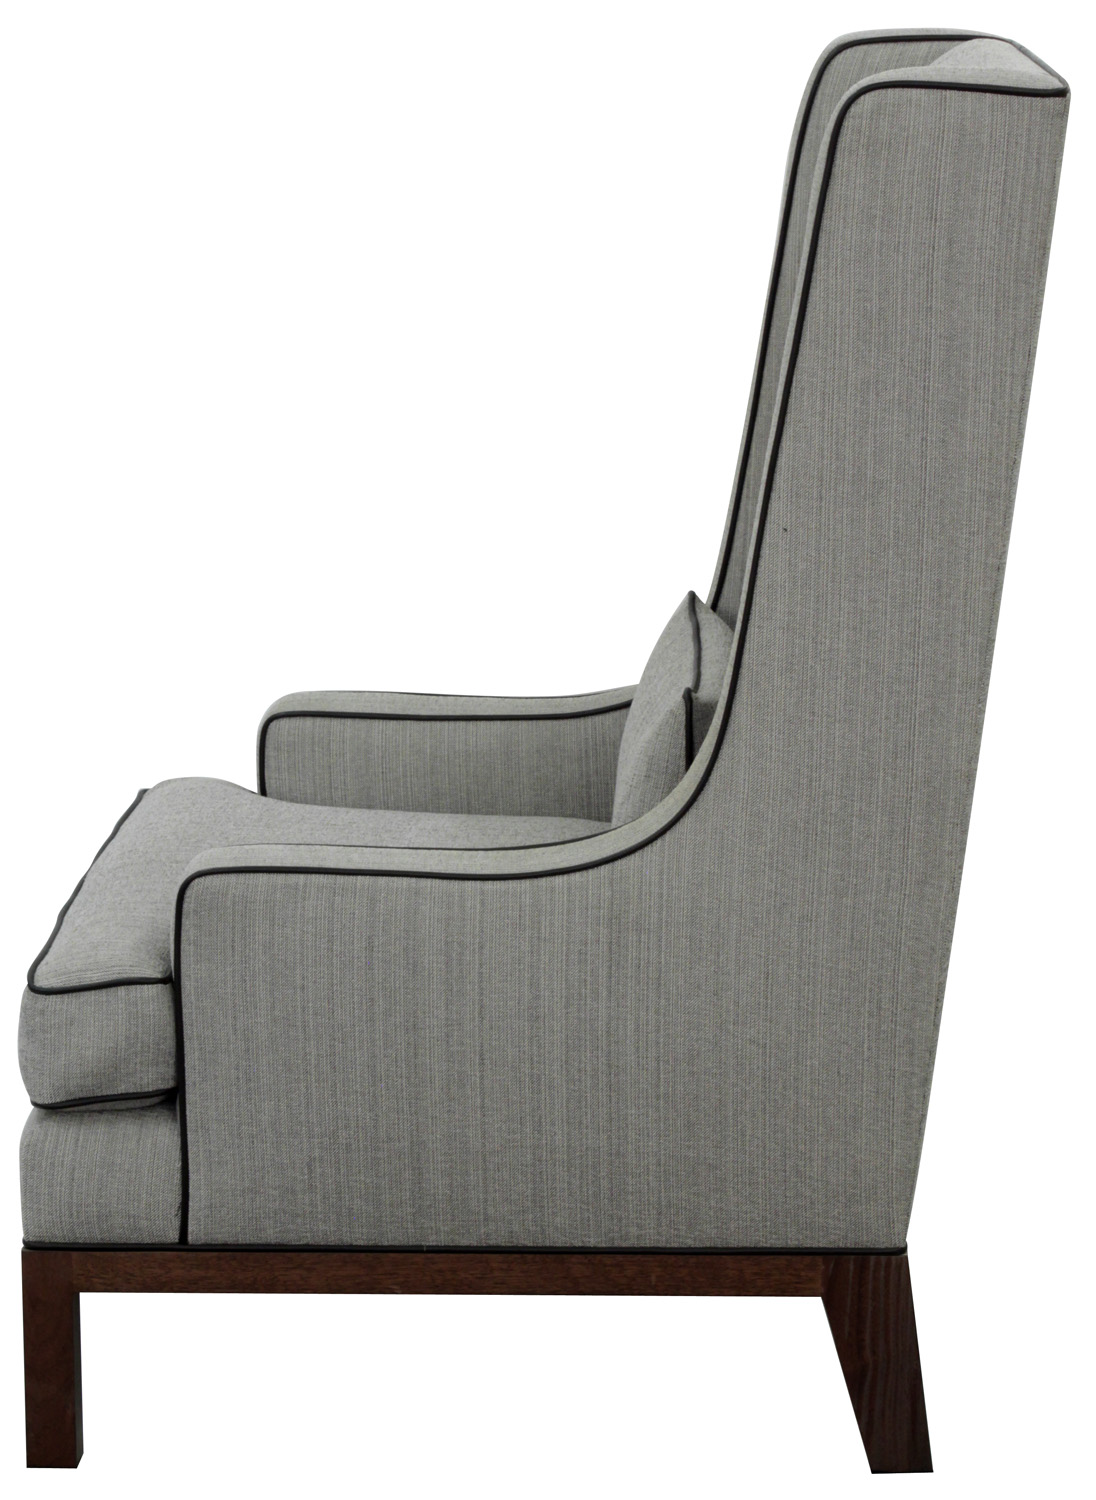 T Hayes12 lrg club chairs loungechairs137 detail8 hires.jpg